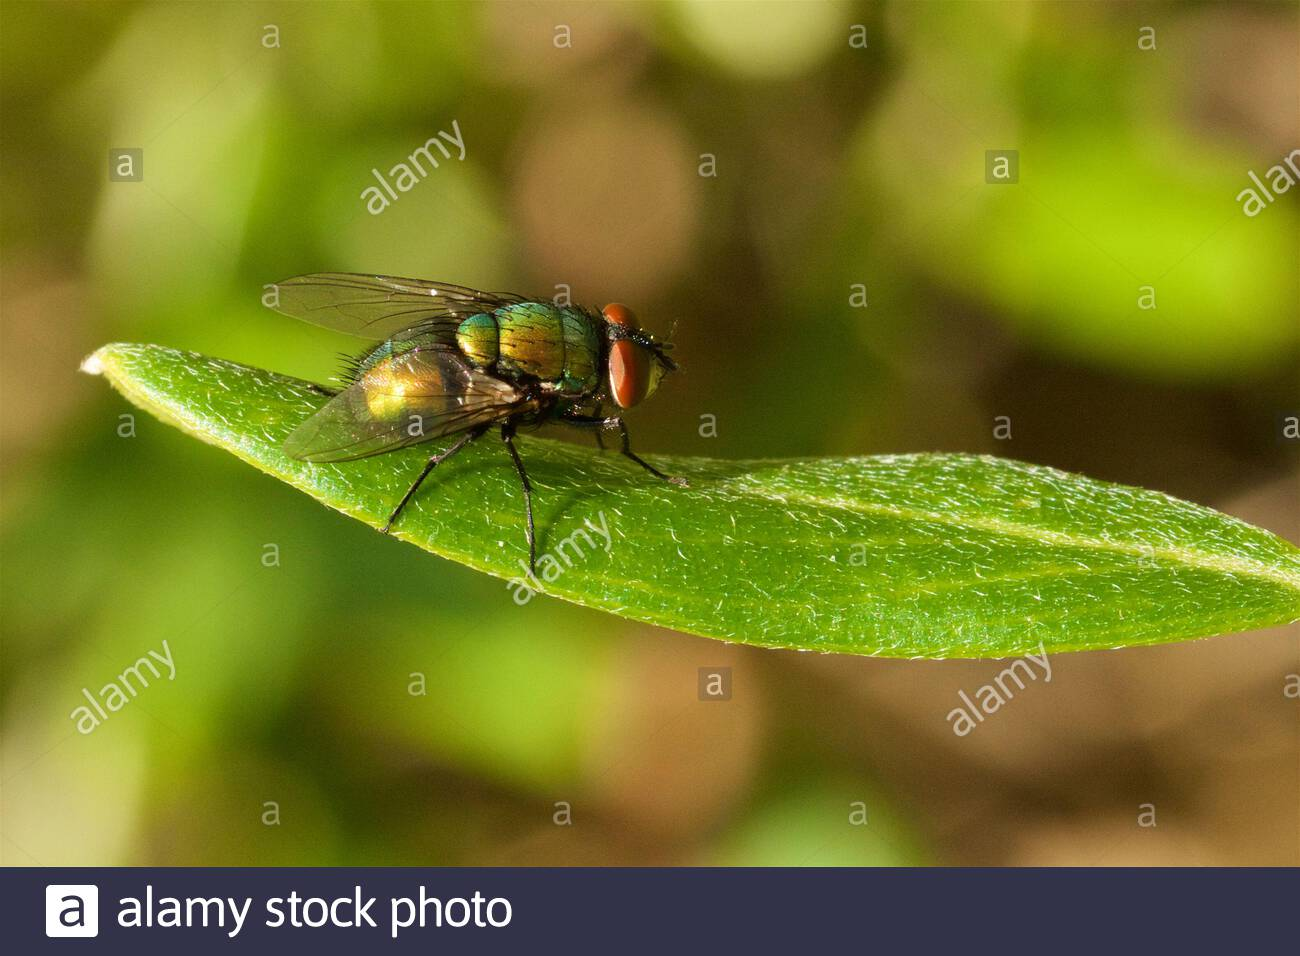 greenbottle-blowfly-lucilia-sp-on-a-green-leaf-2BTEF6A.jpg